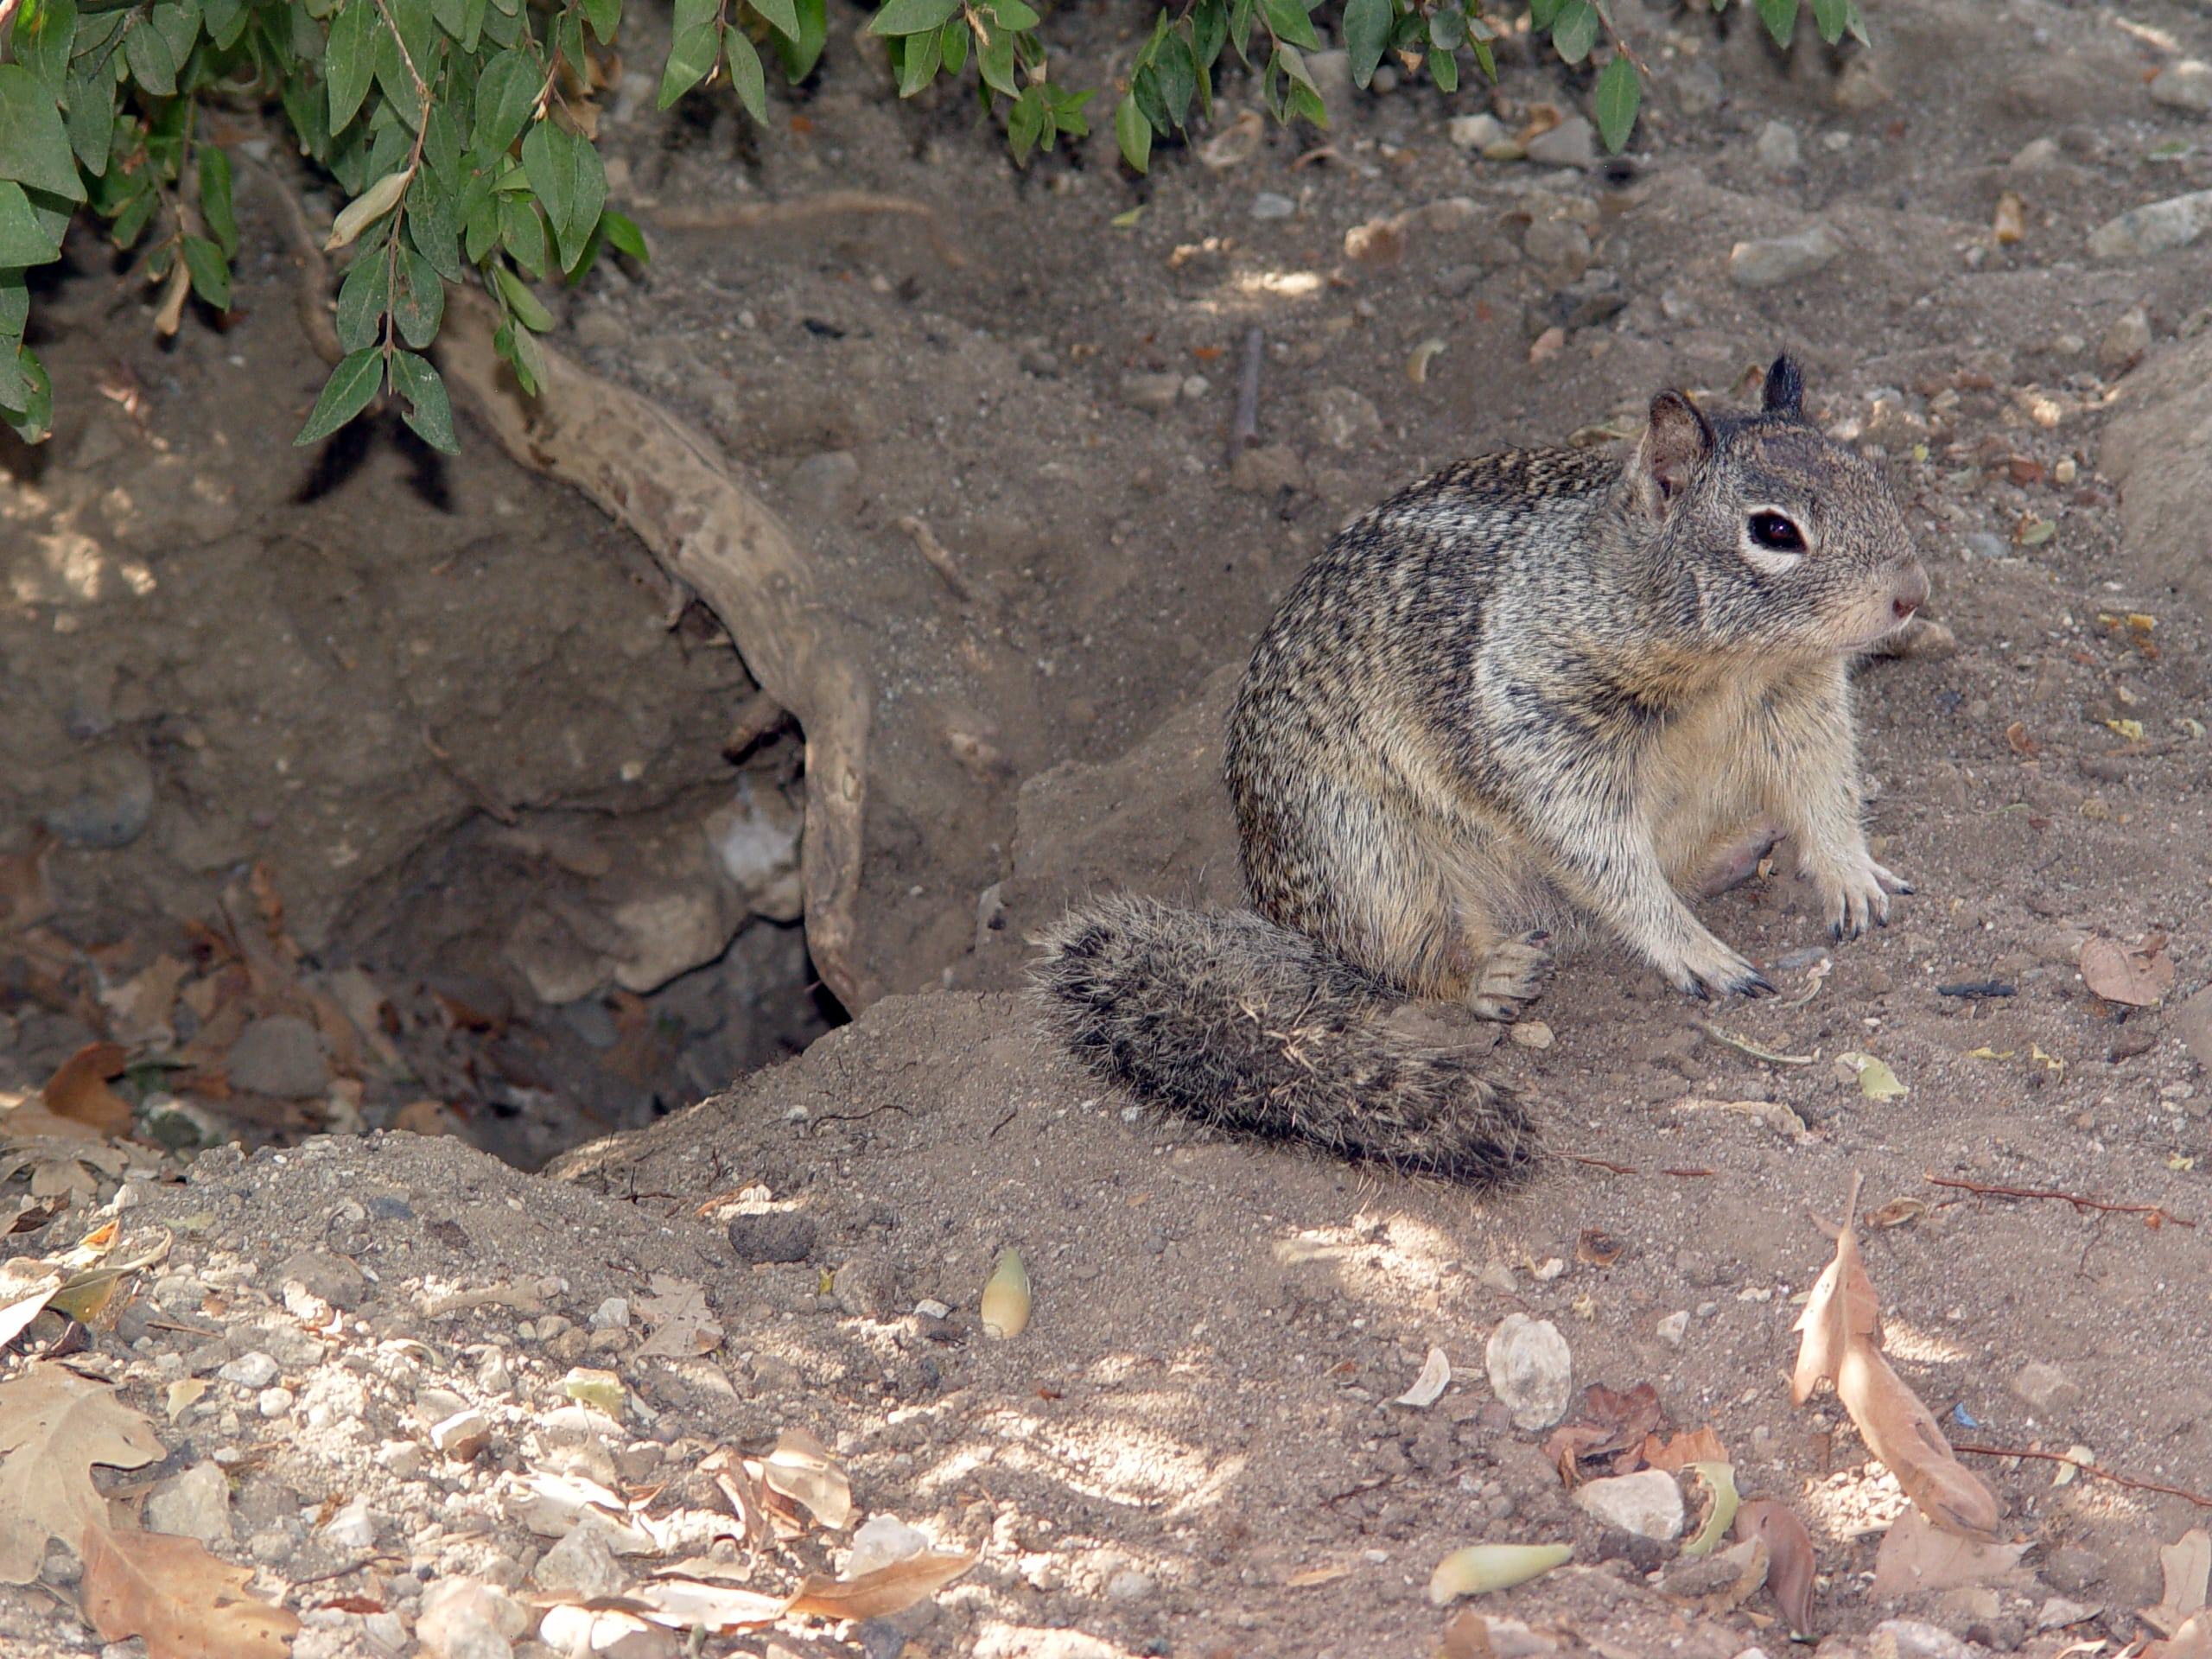 Squirrel next to its burrow hole